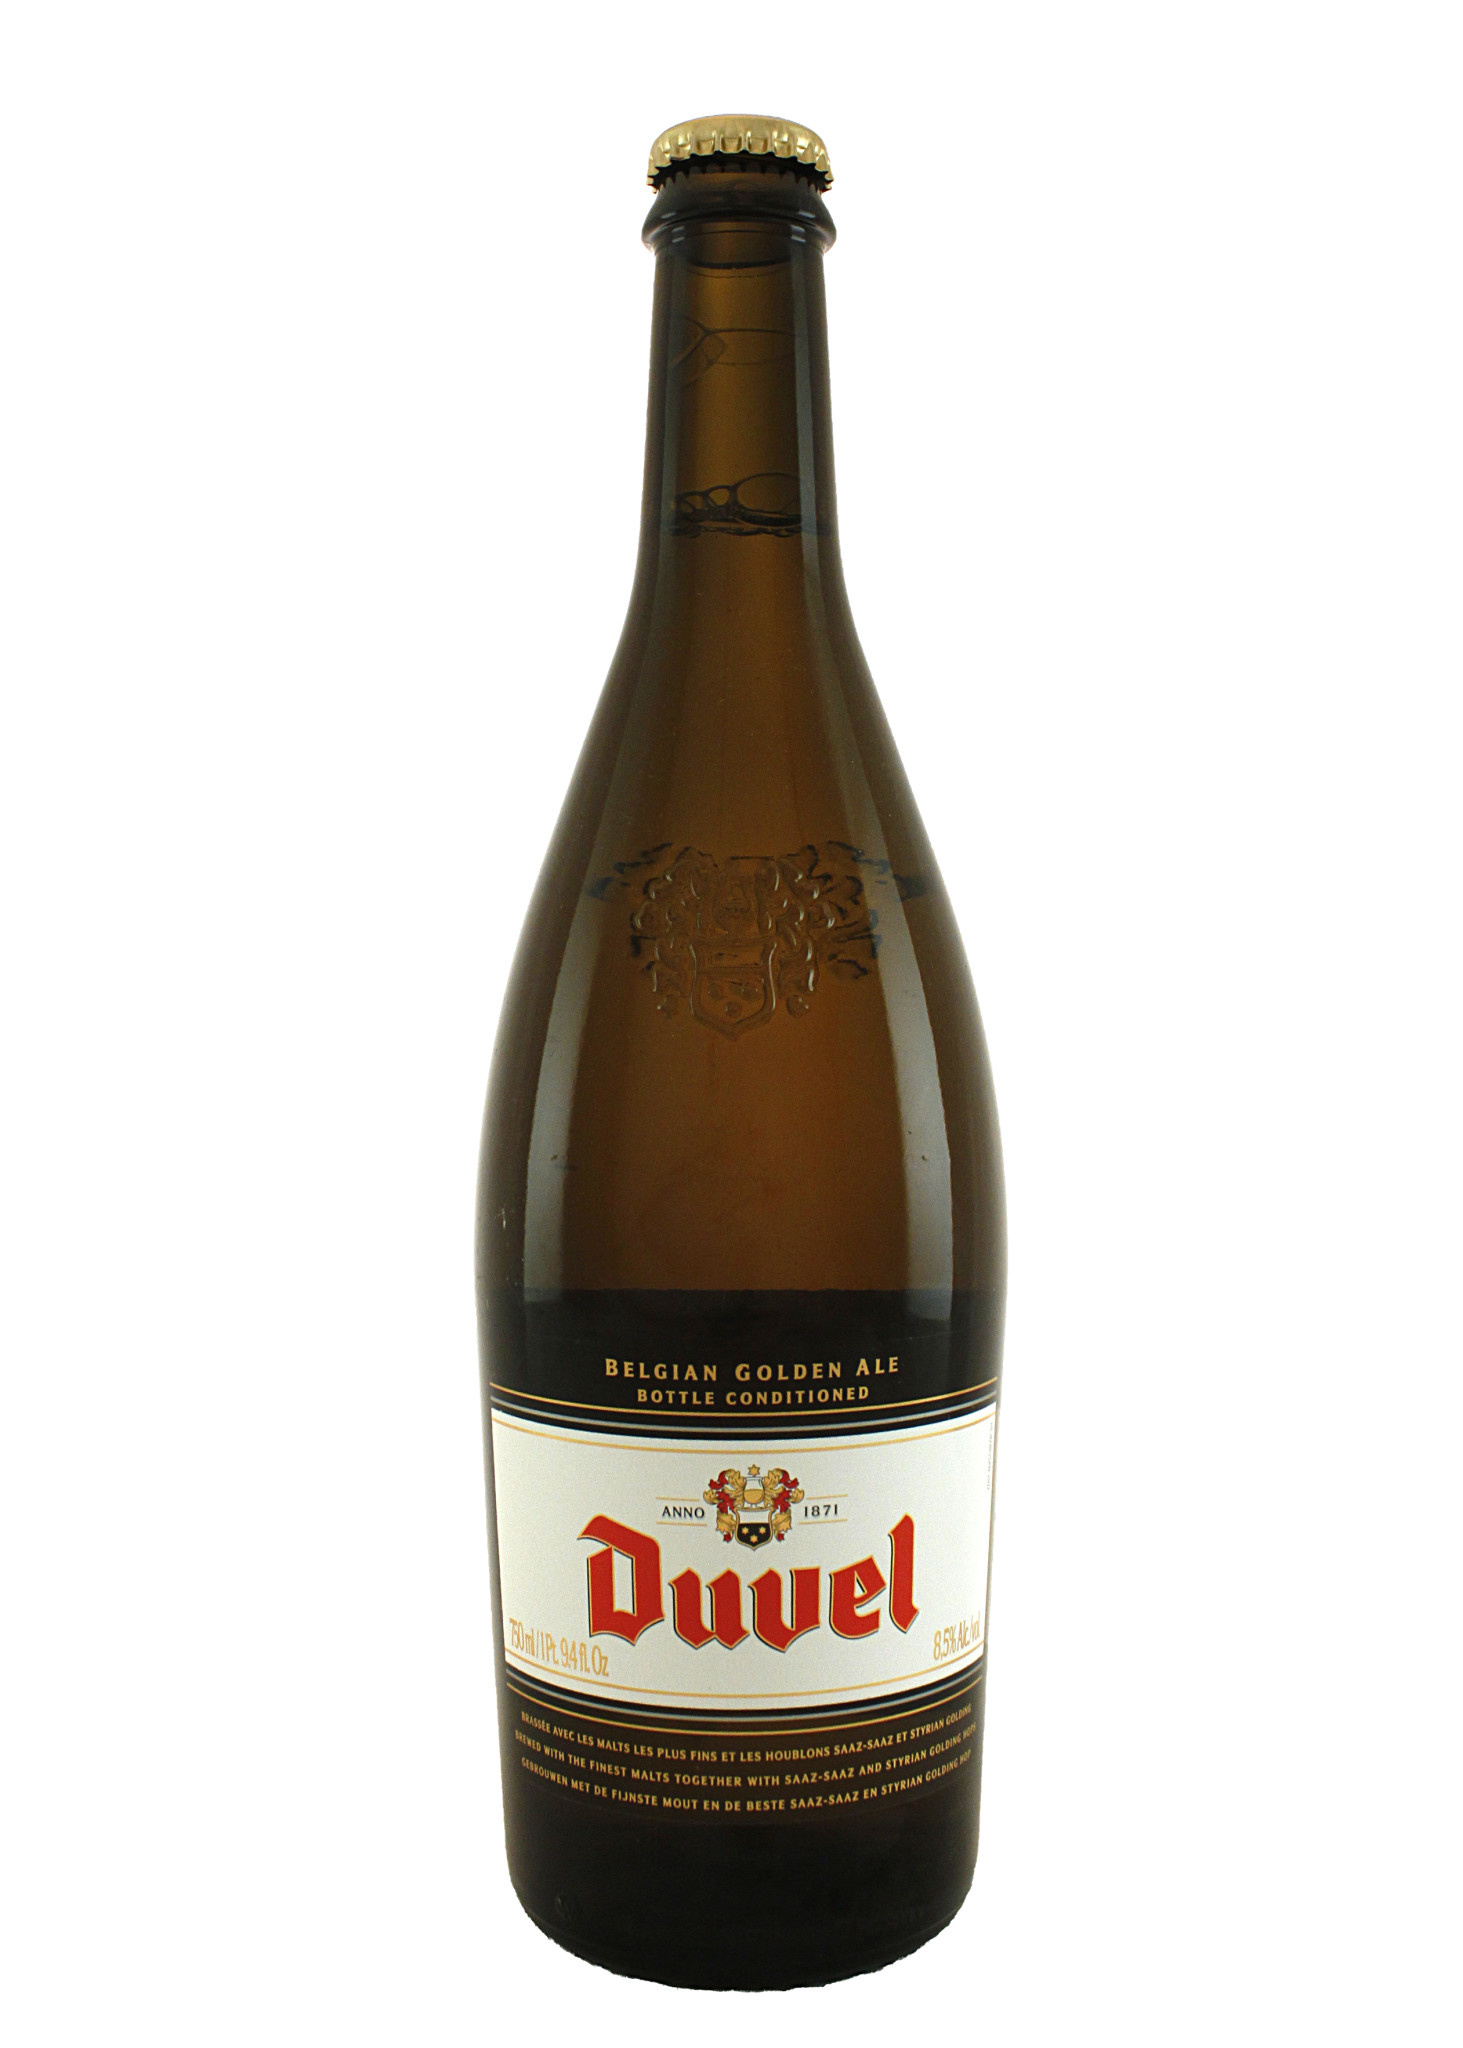 Duvel Belgian Golden Ale, Belgium 750ml